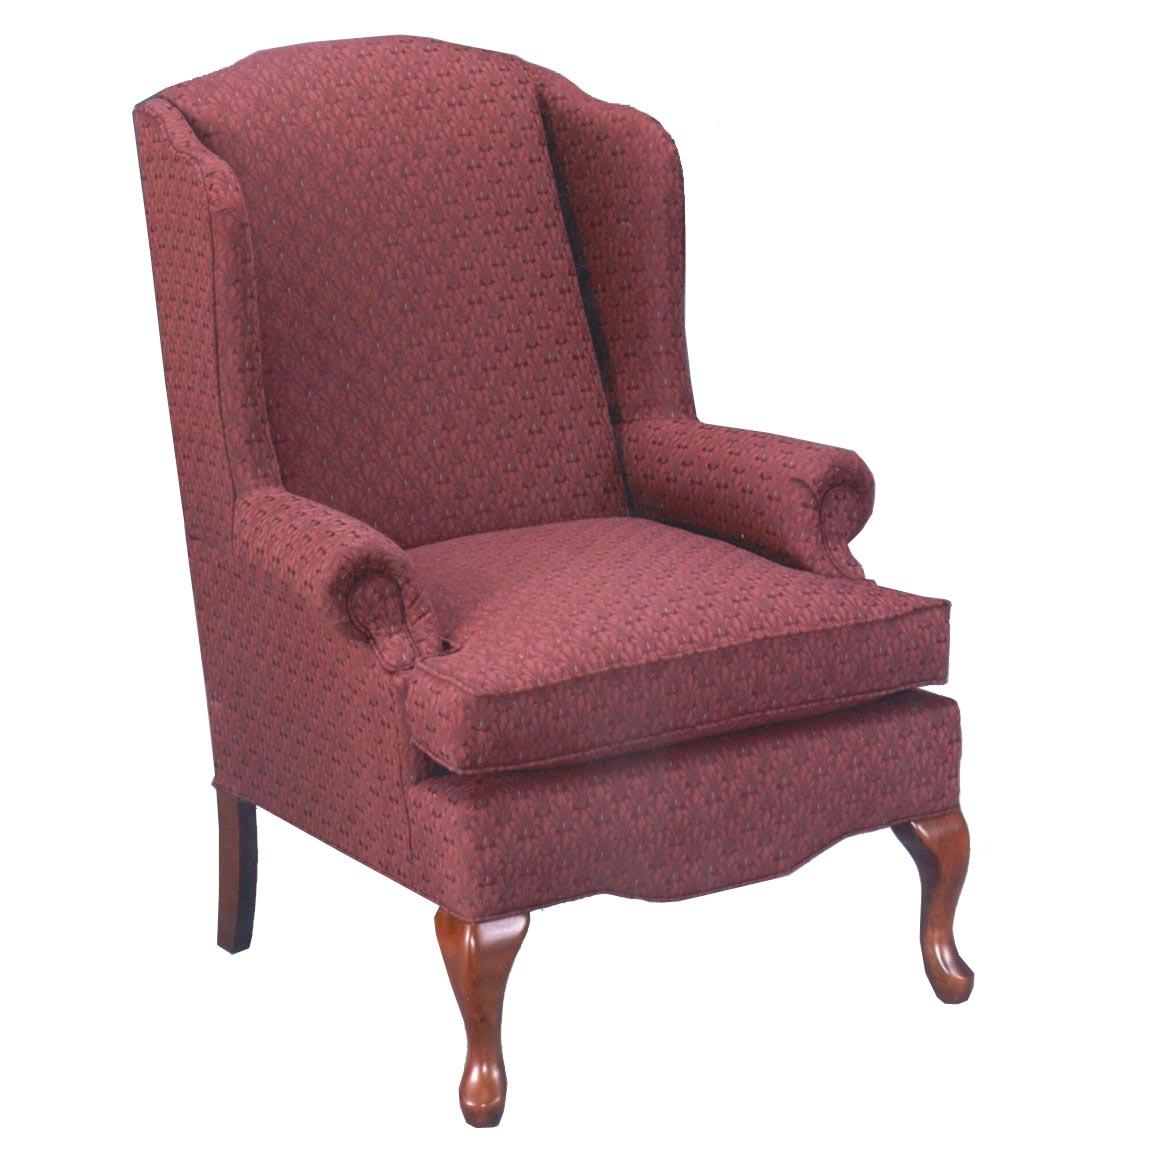 queen anne wing chair white wishbone replica low back loveseat milano blue leather power plus